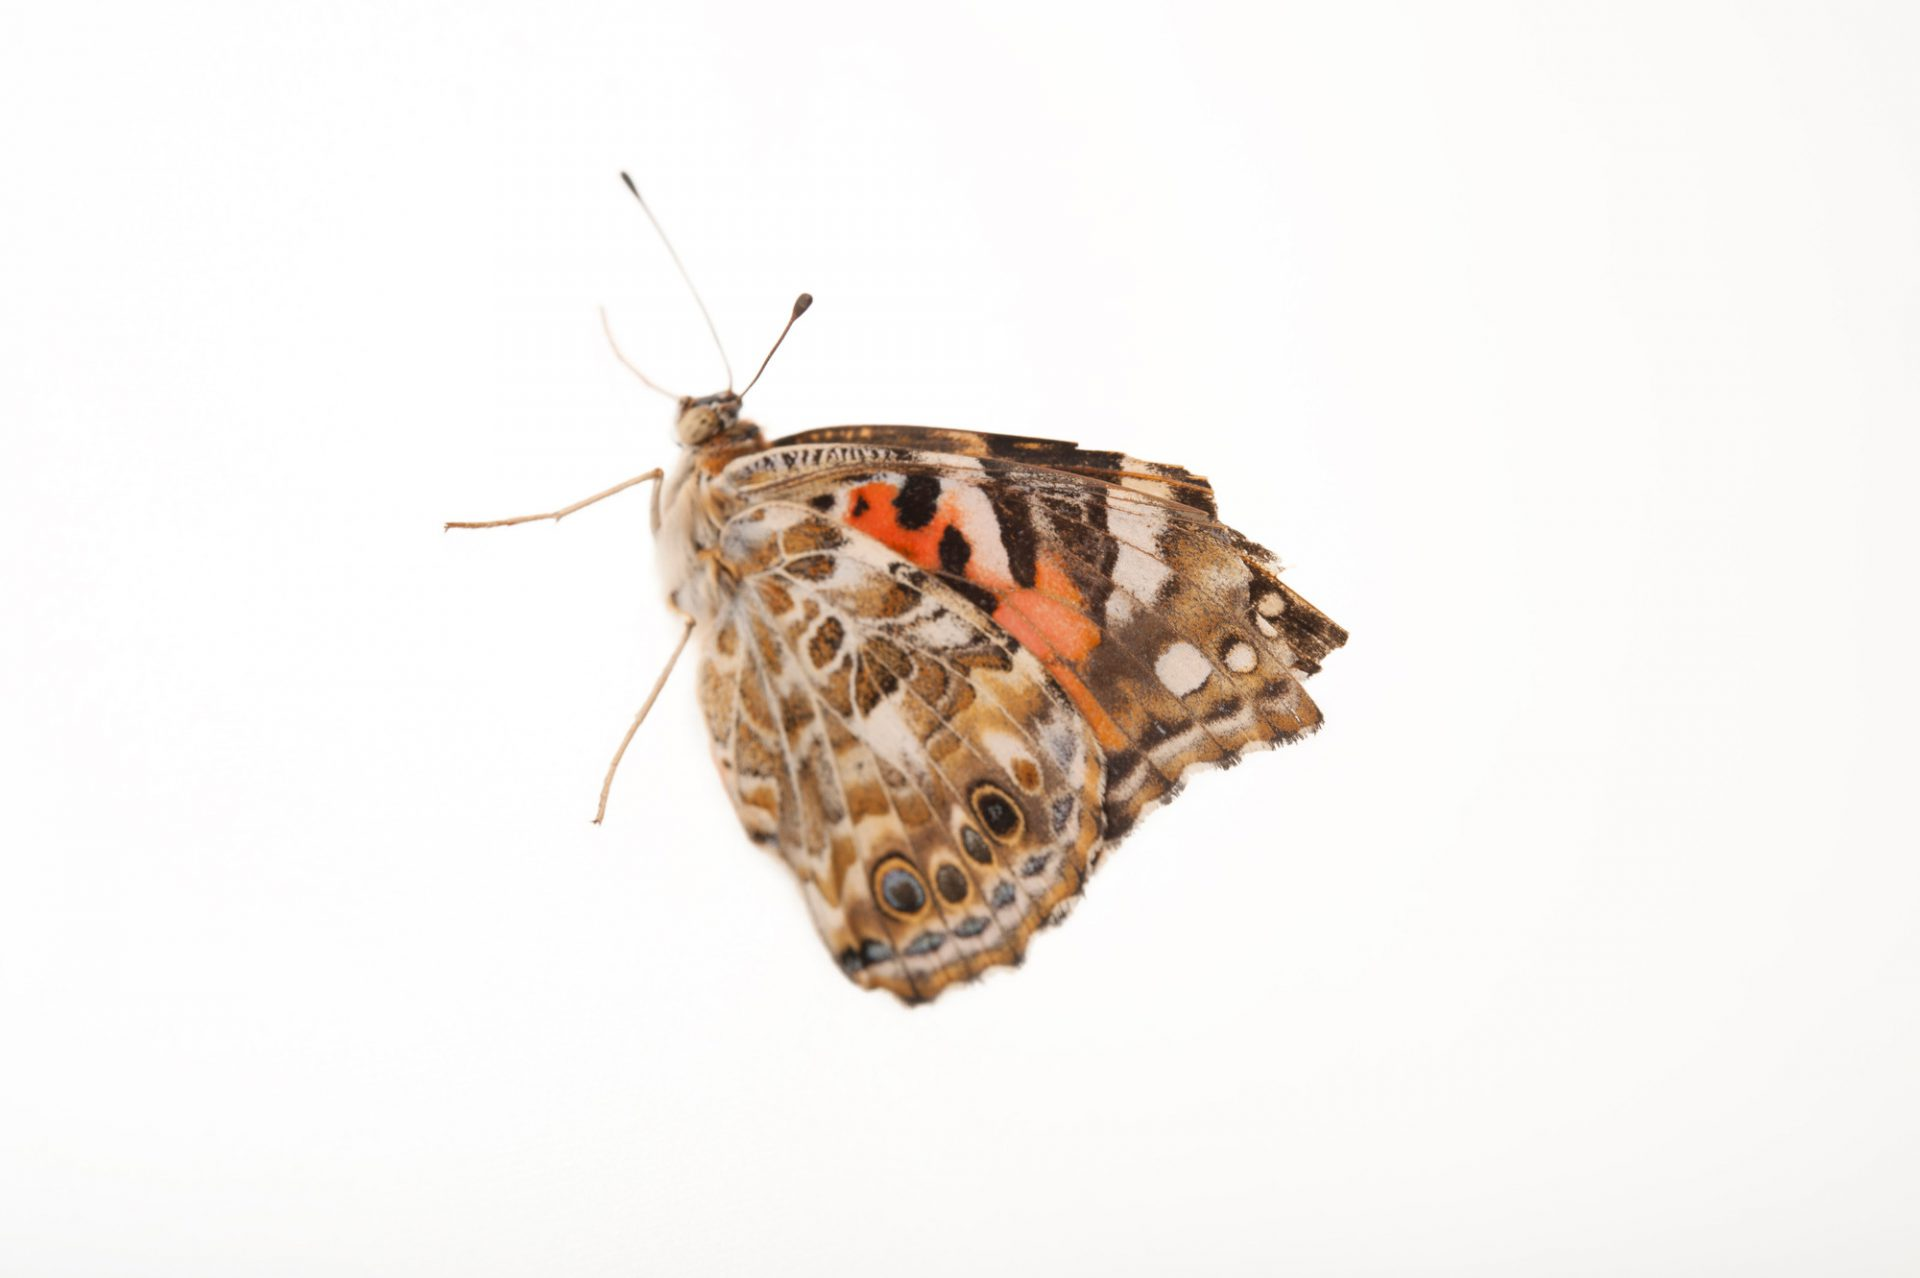 American painted lady (Vanessa cardui) a native to Nebraska, at the Lincoln Children's Zoo.